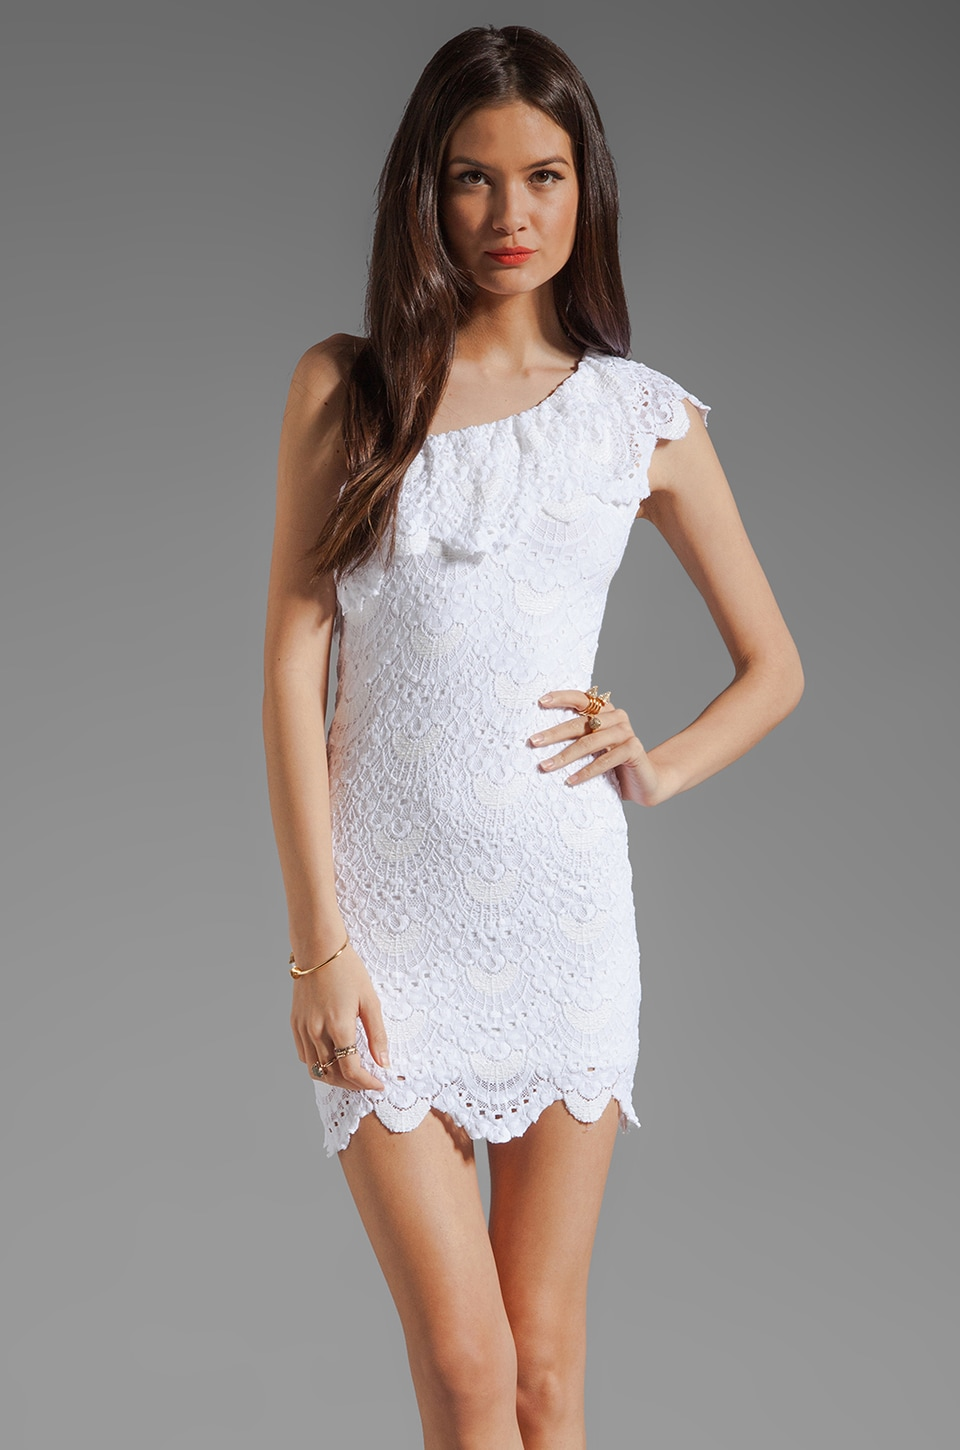 Nightcap One Shoulder Lace Dress in White